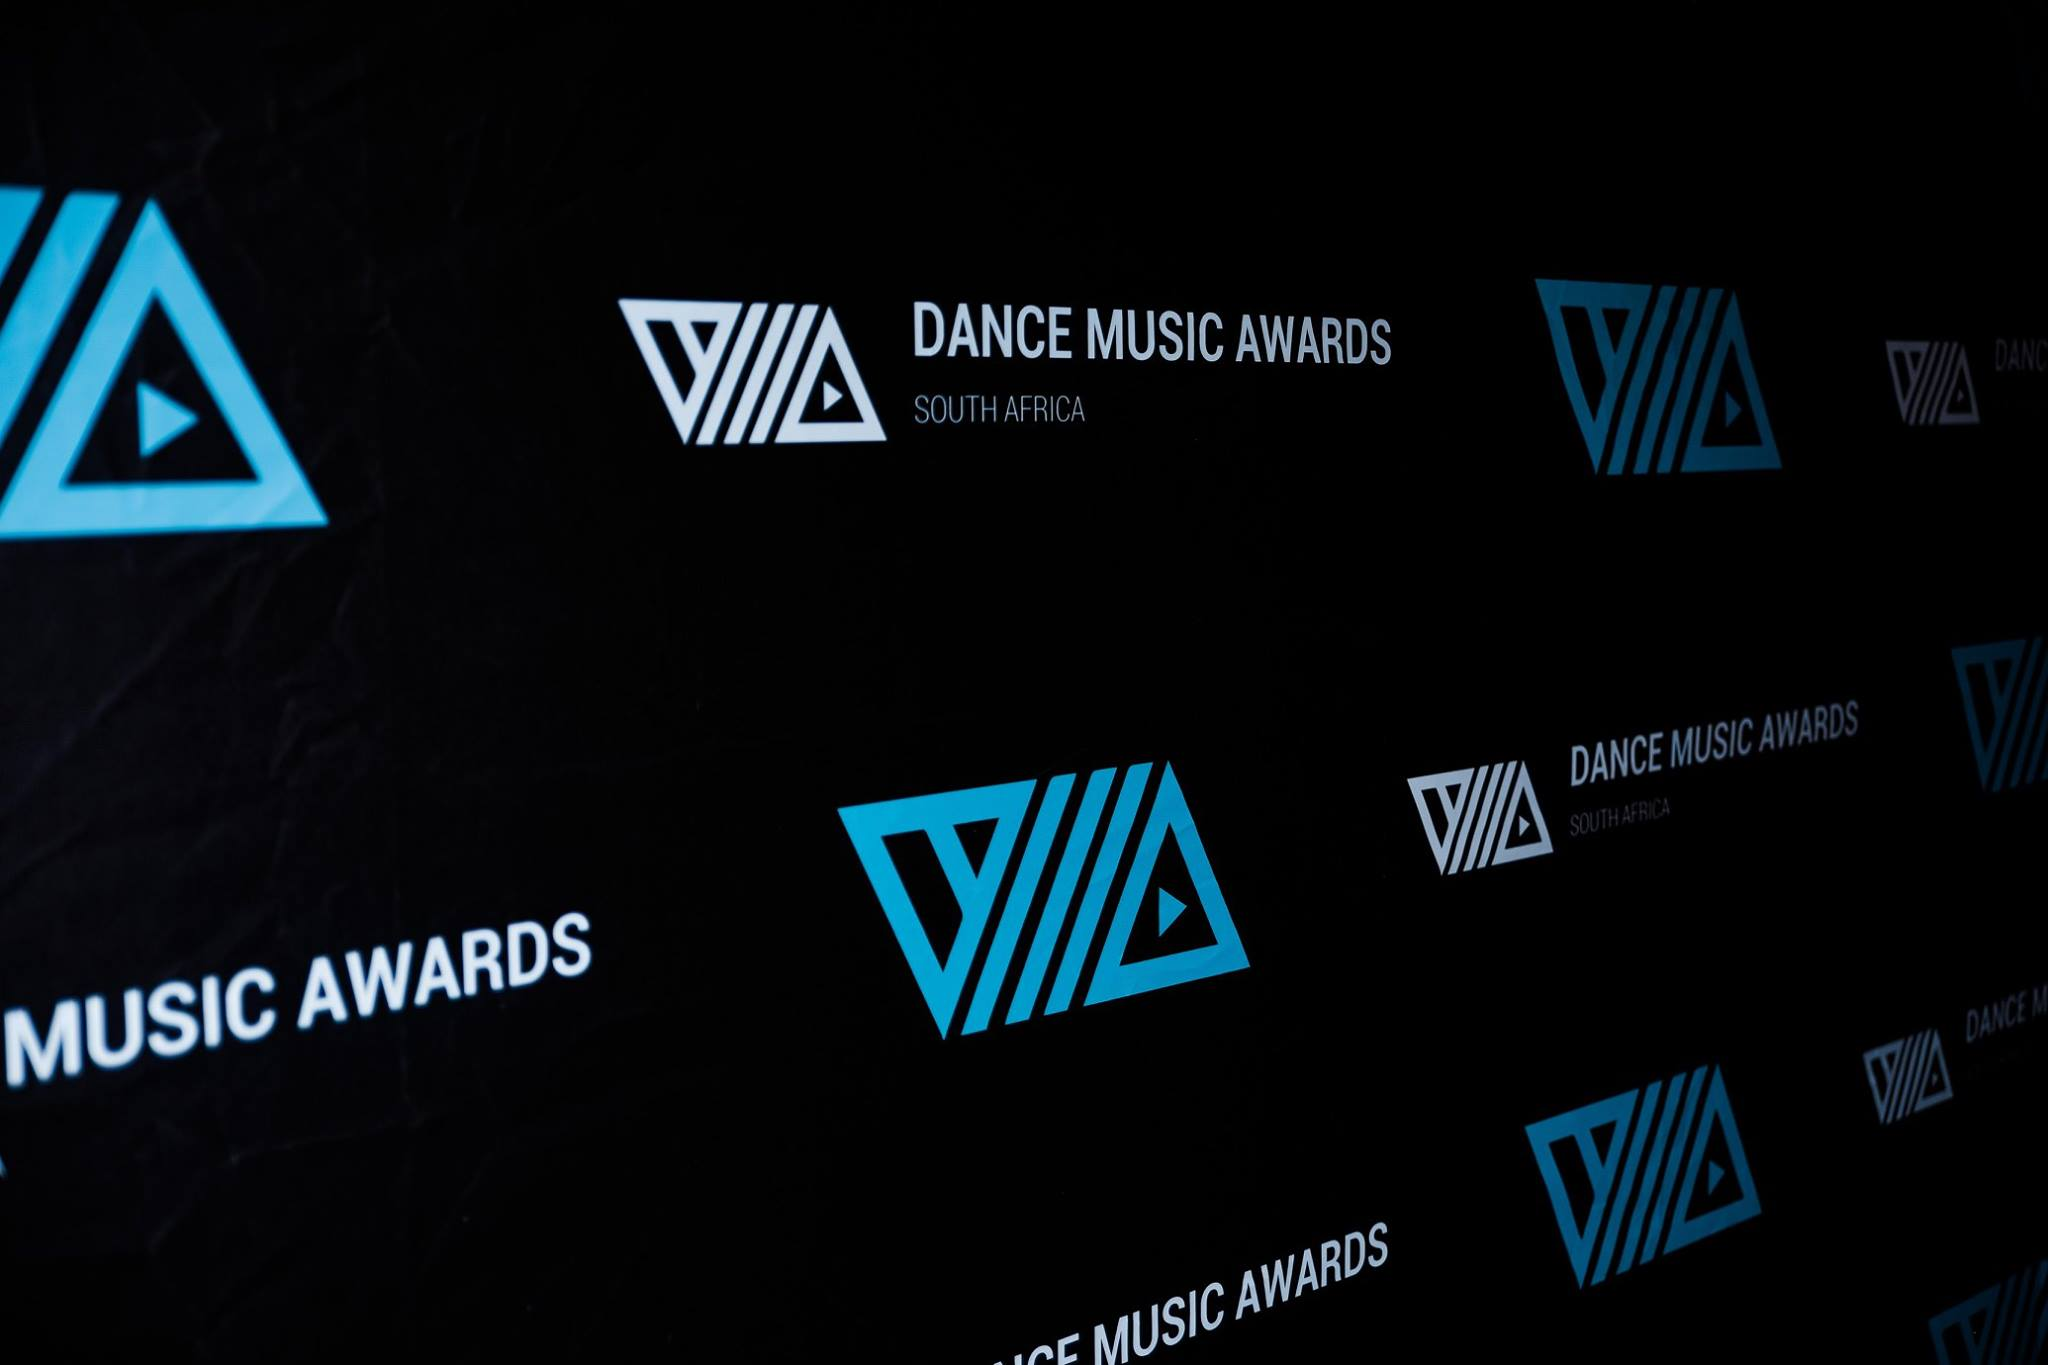 And the Dance Music Awards South Africa 2018 winners are